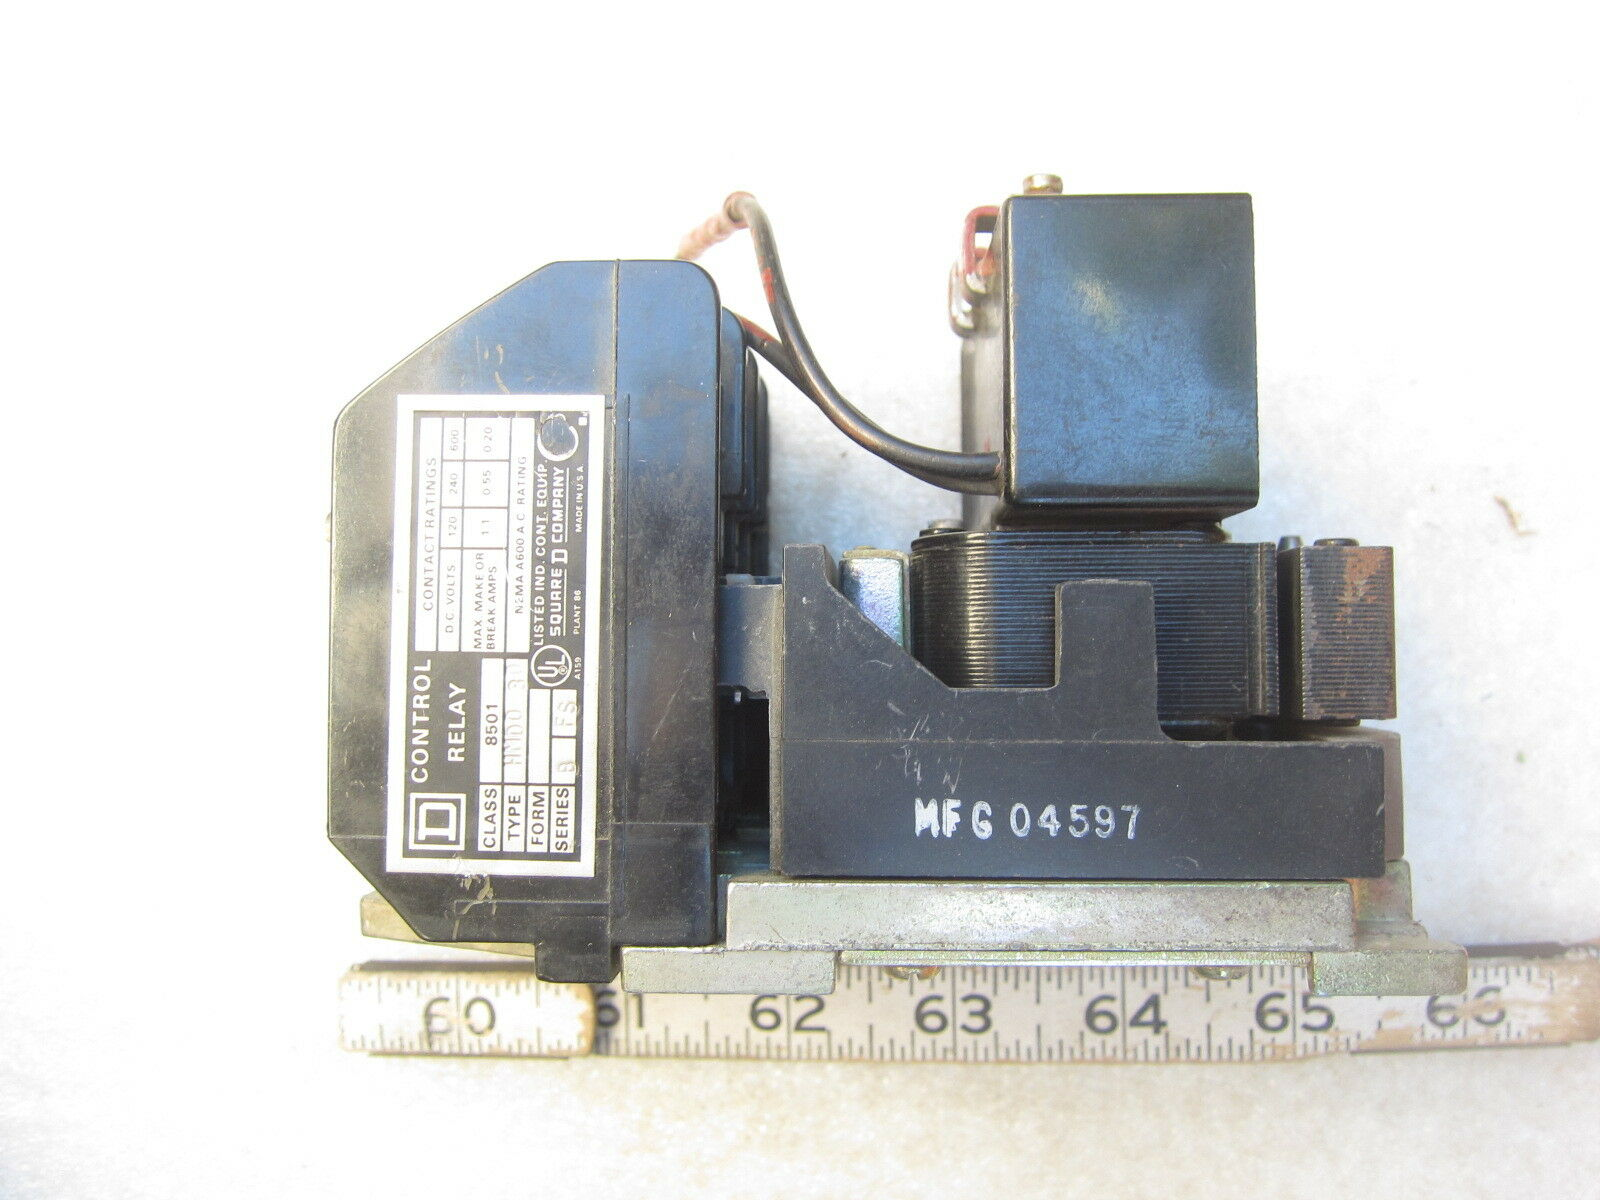 Square D 8501 Hmd030 4p 24vdc Coil No Nc Relay Ebay With And Contacts Pre Owned Lowest Price